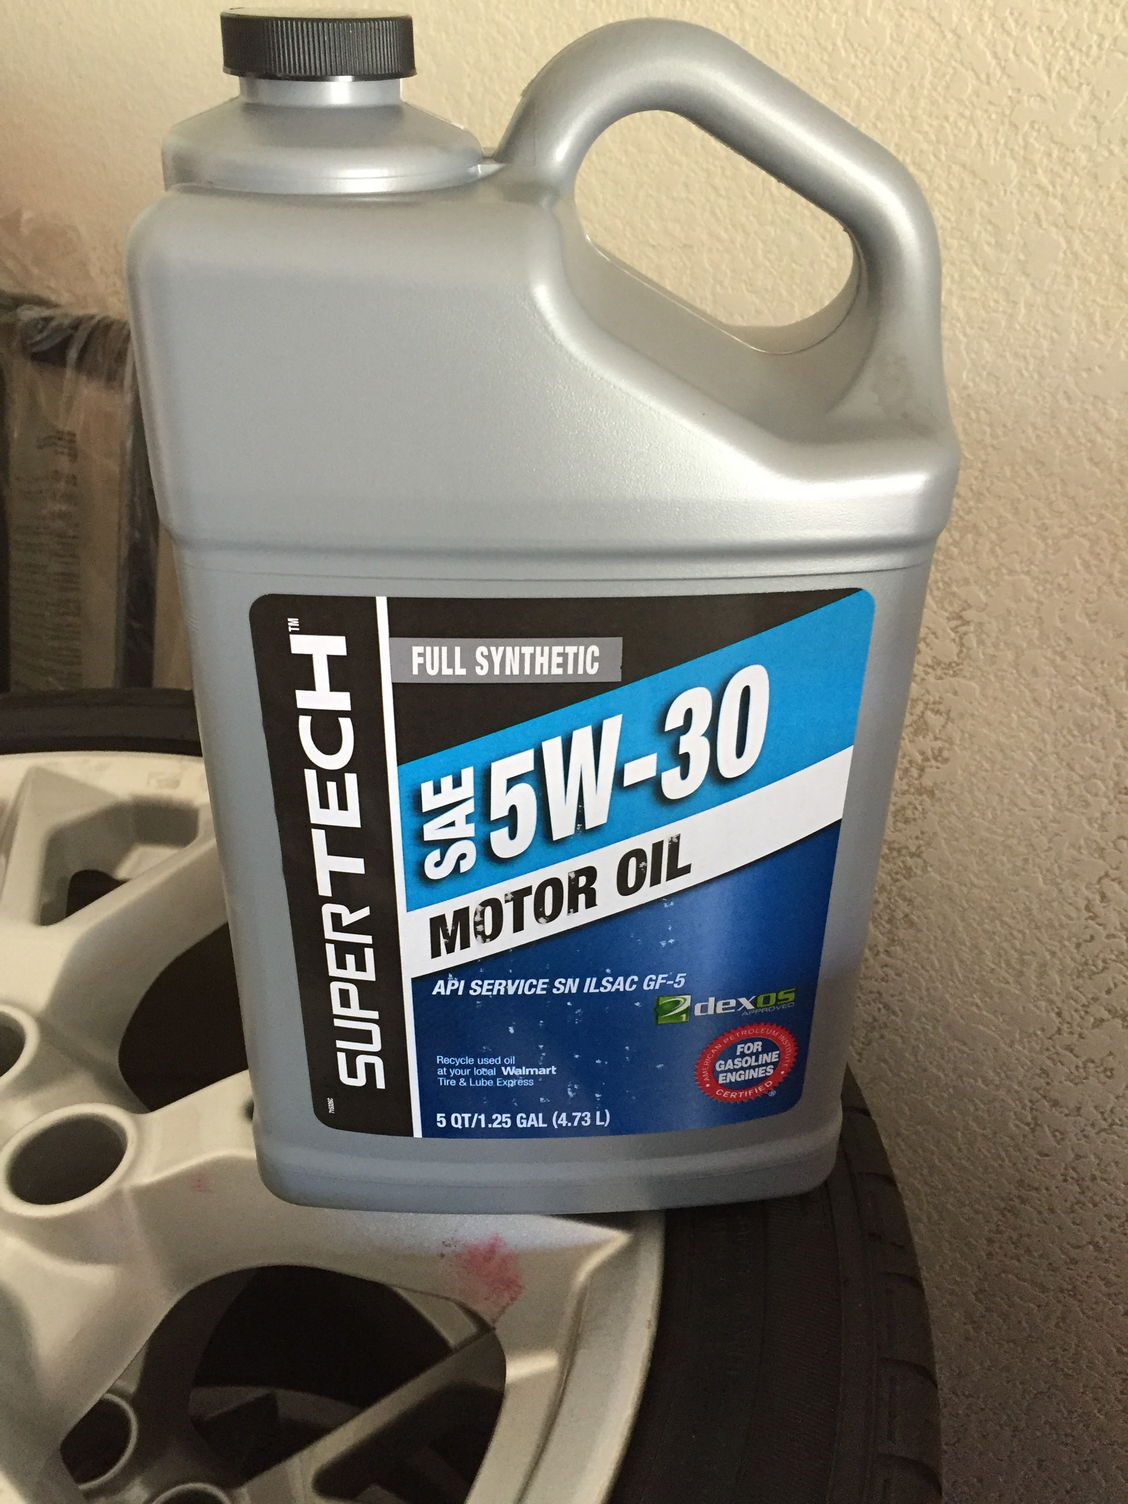 How often to change oil in 2015 honda autos post for Honda service oil change